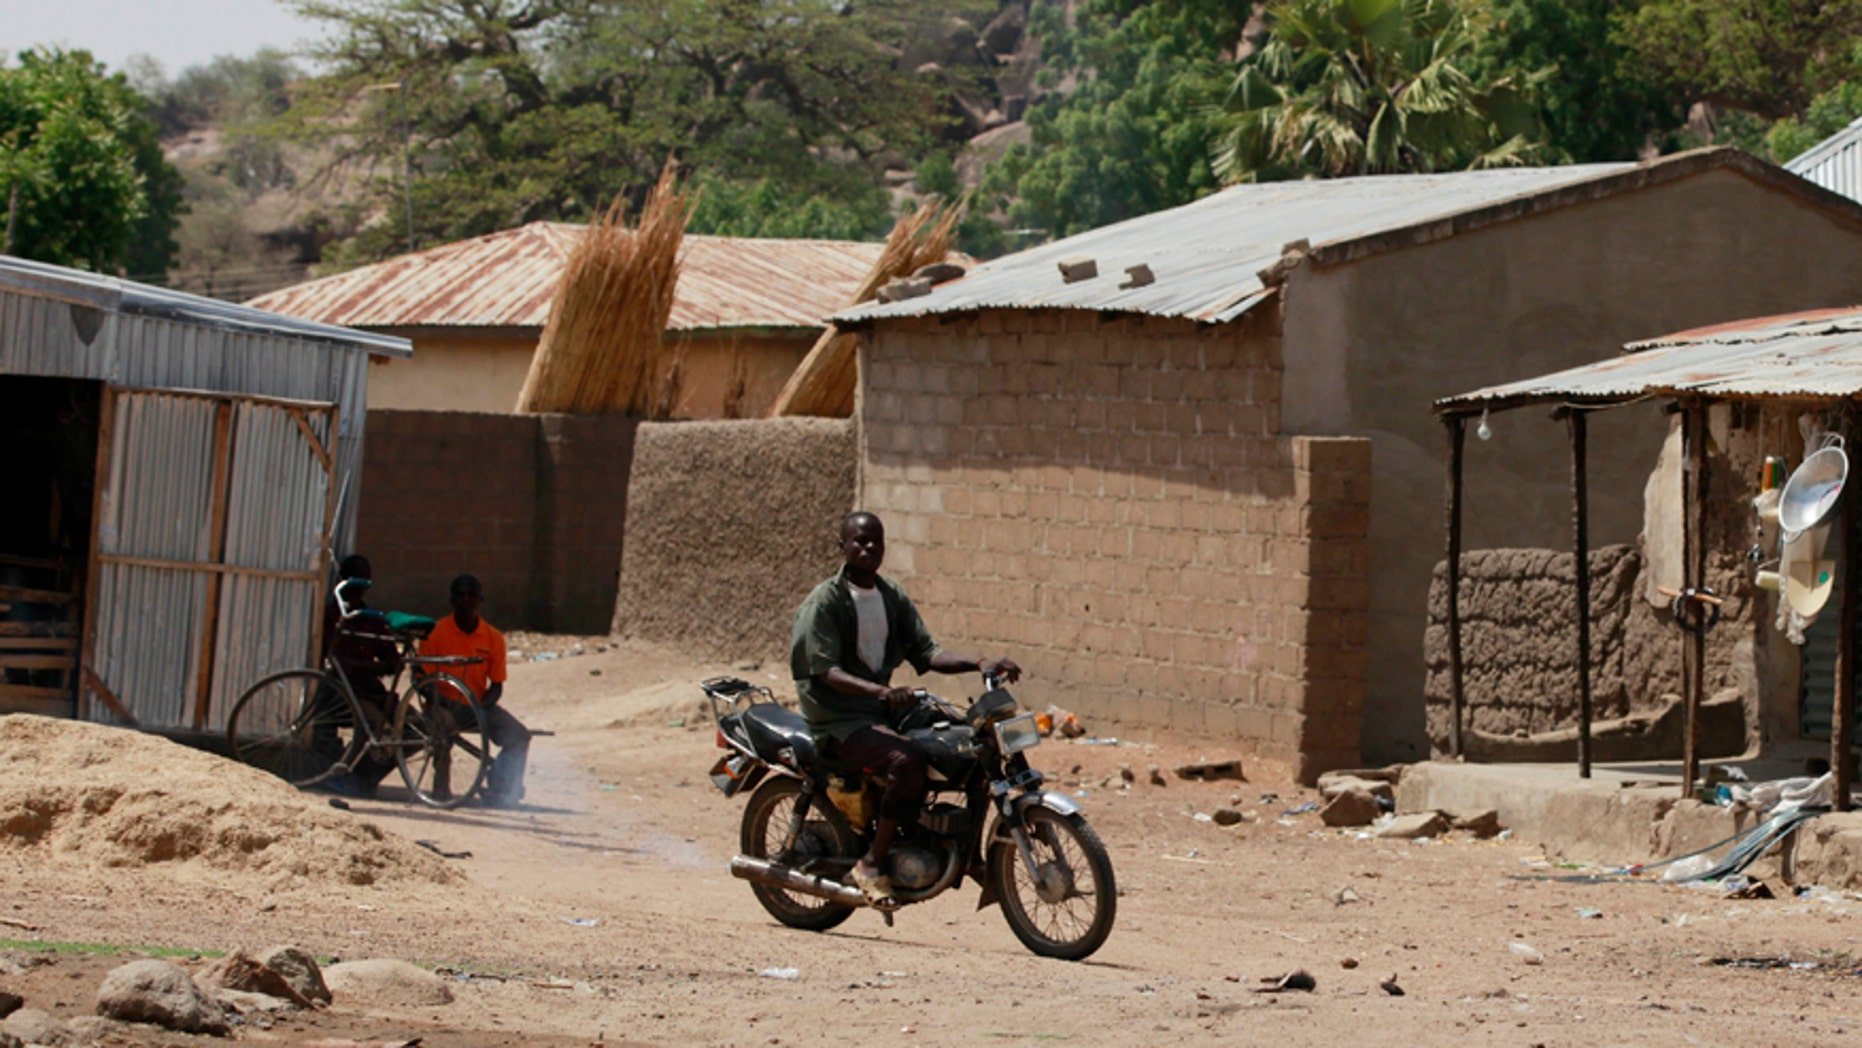 Jan. 28, 2016: An unidentified man rides a motorbike past houses in Chibok, Nigeria.